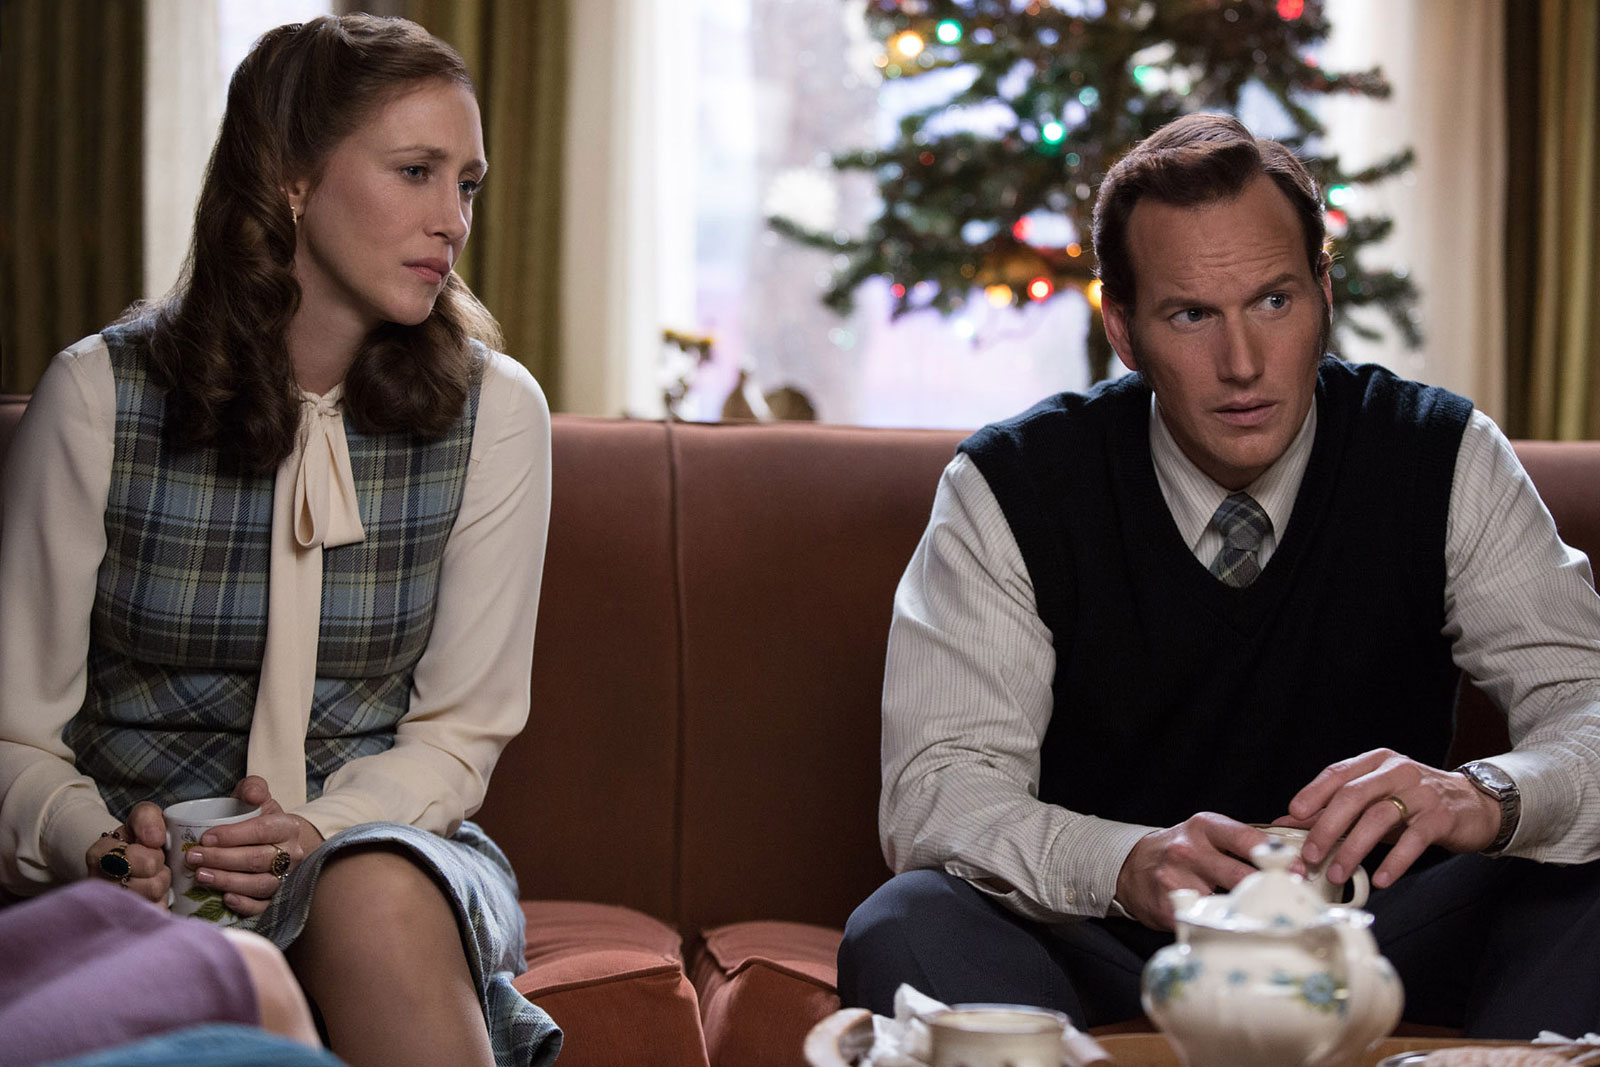 The Conjuring 2 (2016) image